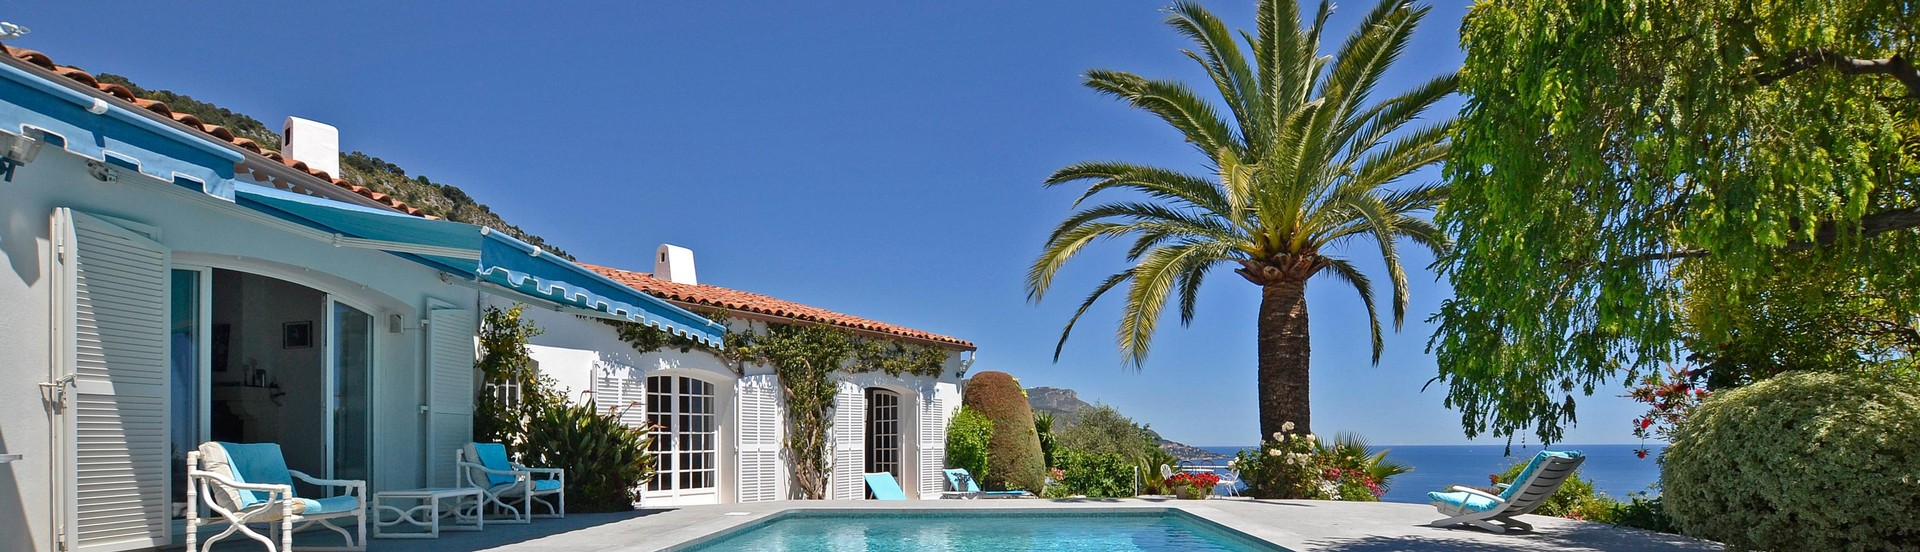 Buy a property on the French Riviera